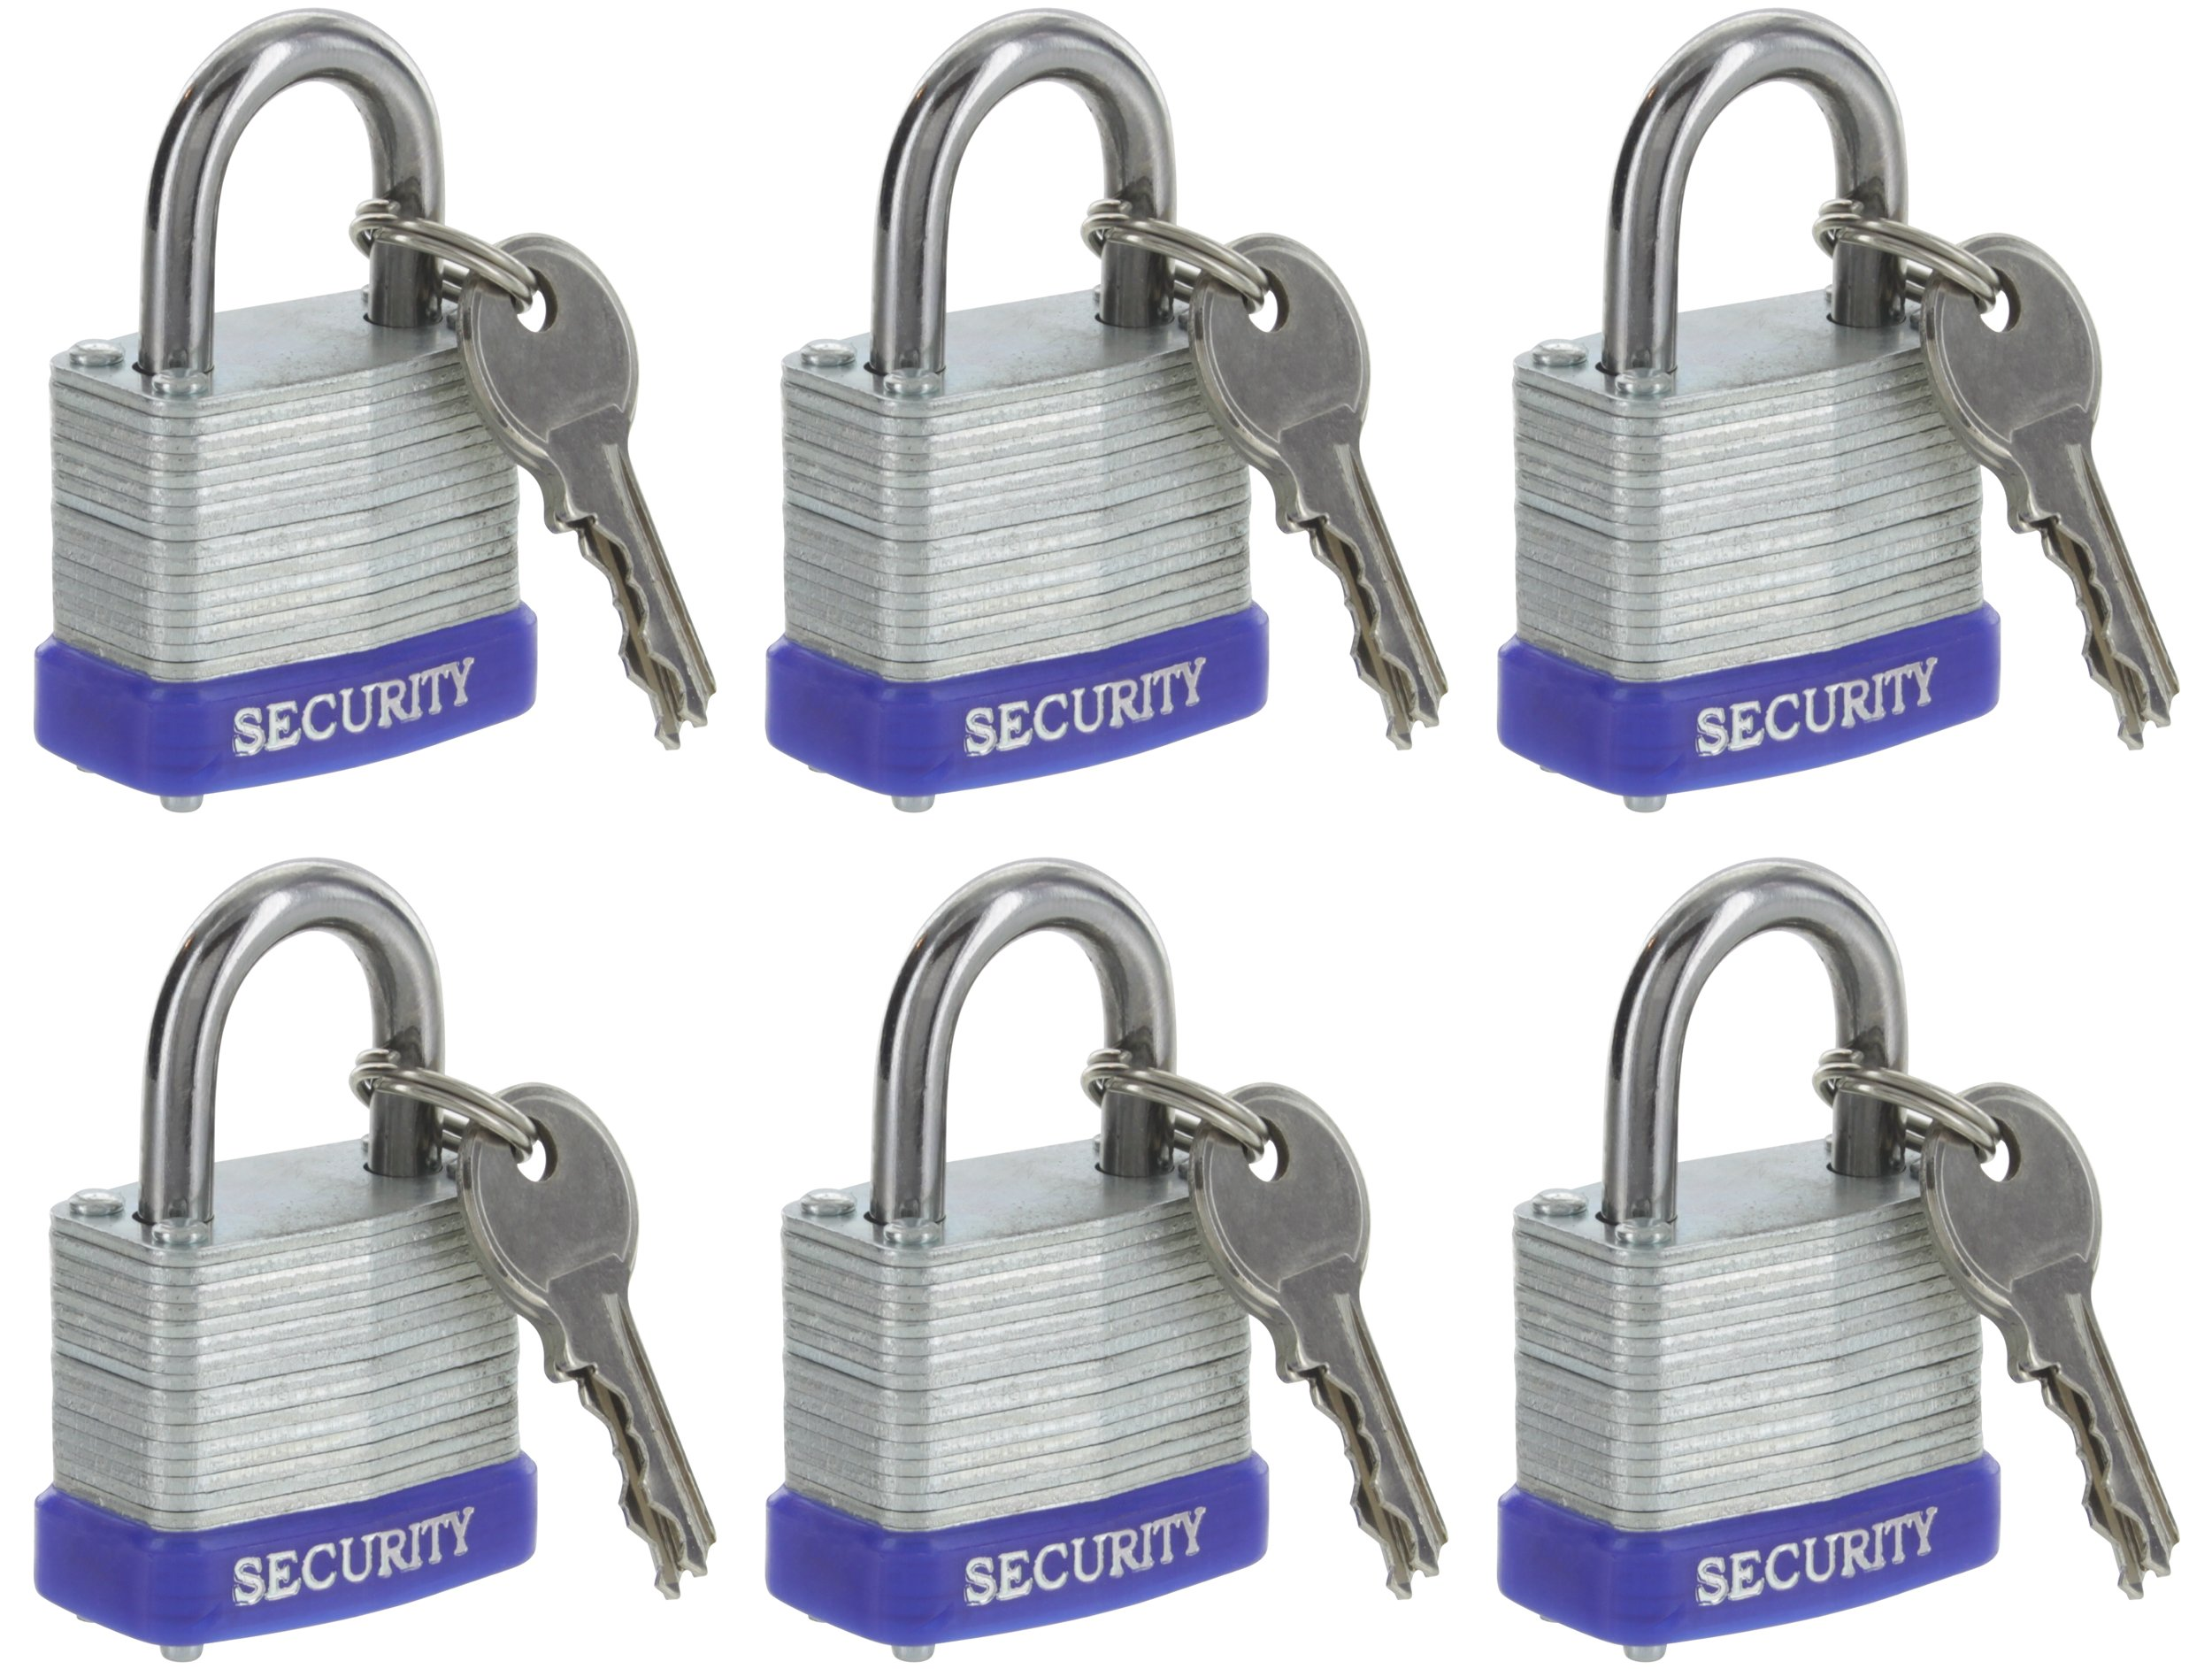 Pack of 6, Laminated Solid Steel Padlocks Hardened Shackle, Heavy Duty Lock with Shackle, Wide Body Keyed Alike Laminated Steel Pin Tumbler Keys Included Outdoor Security Lock